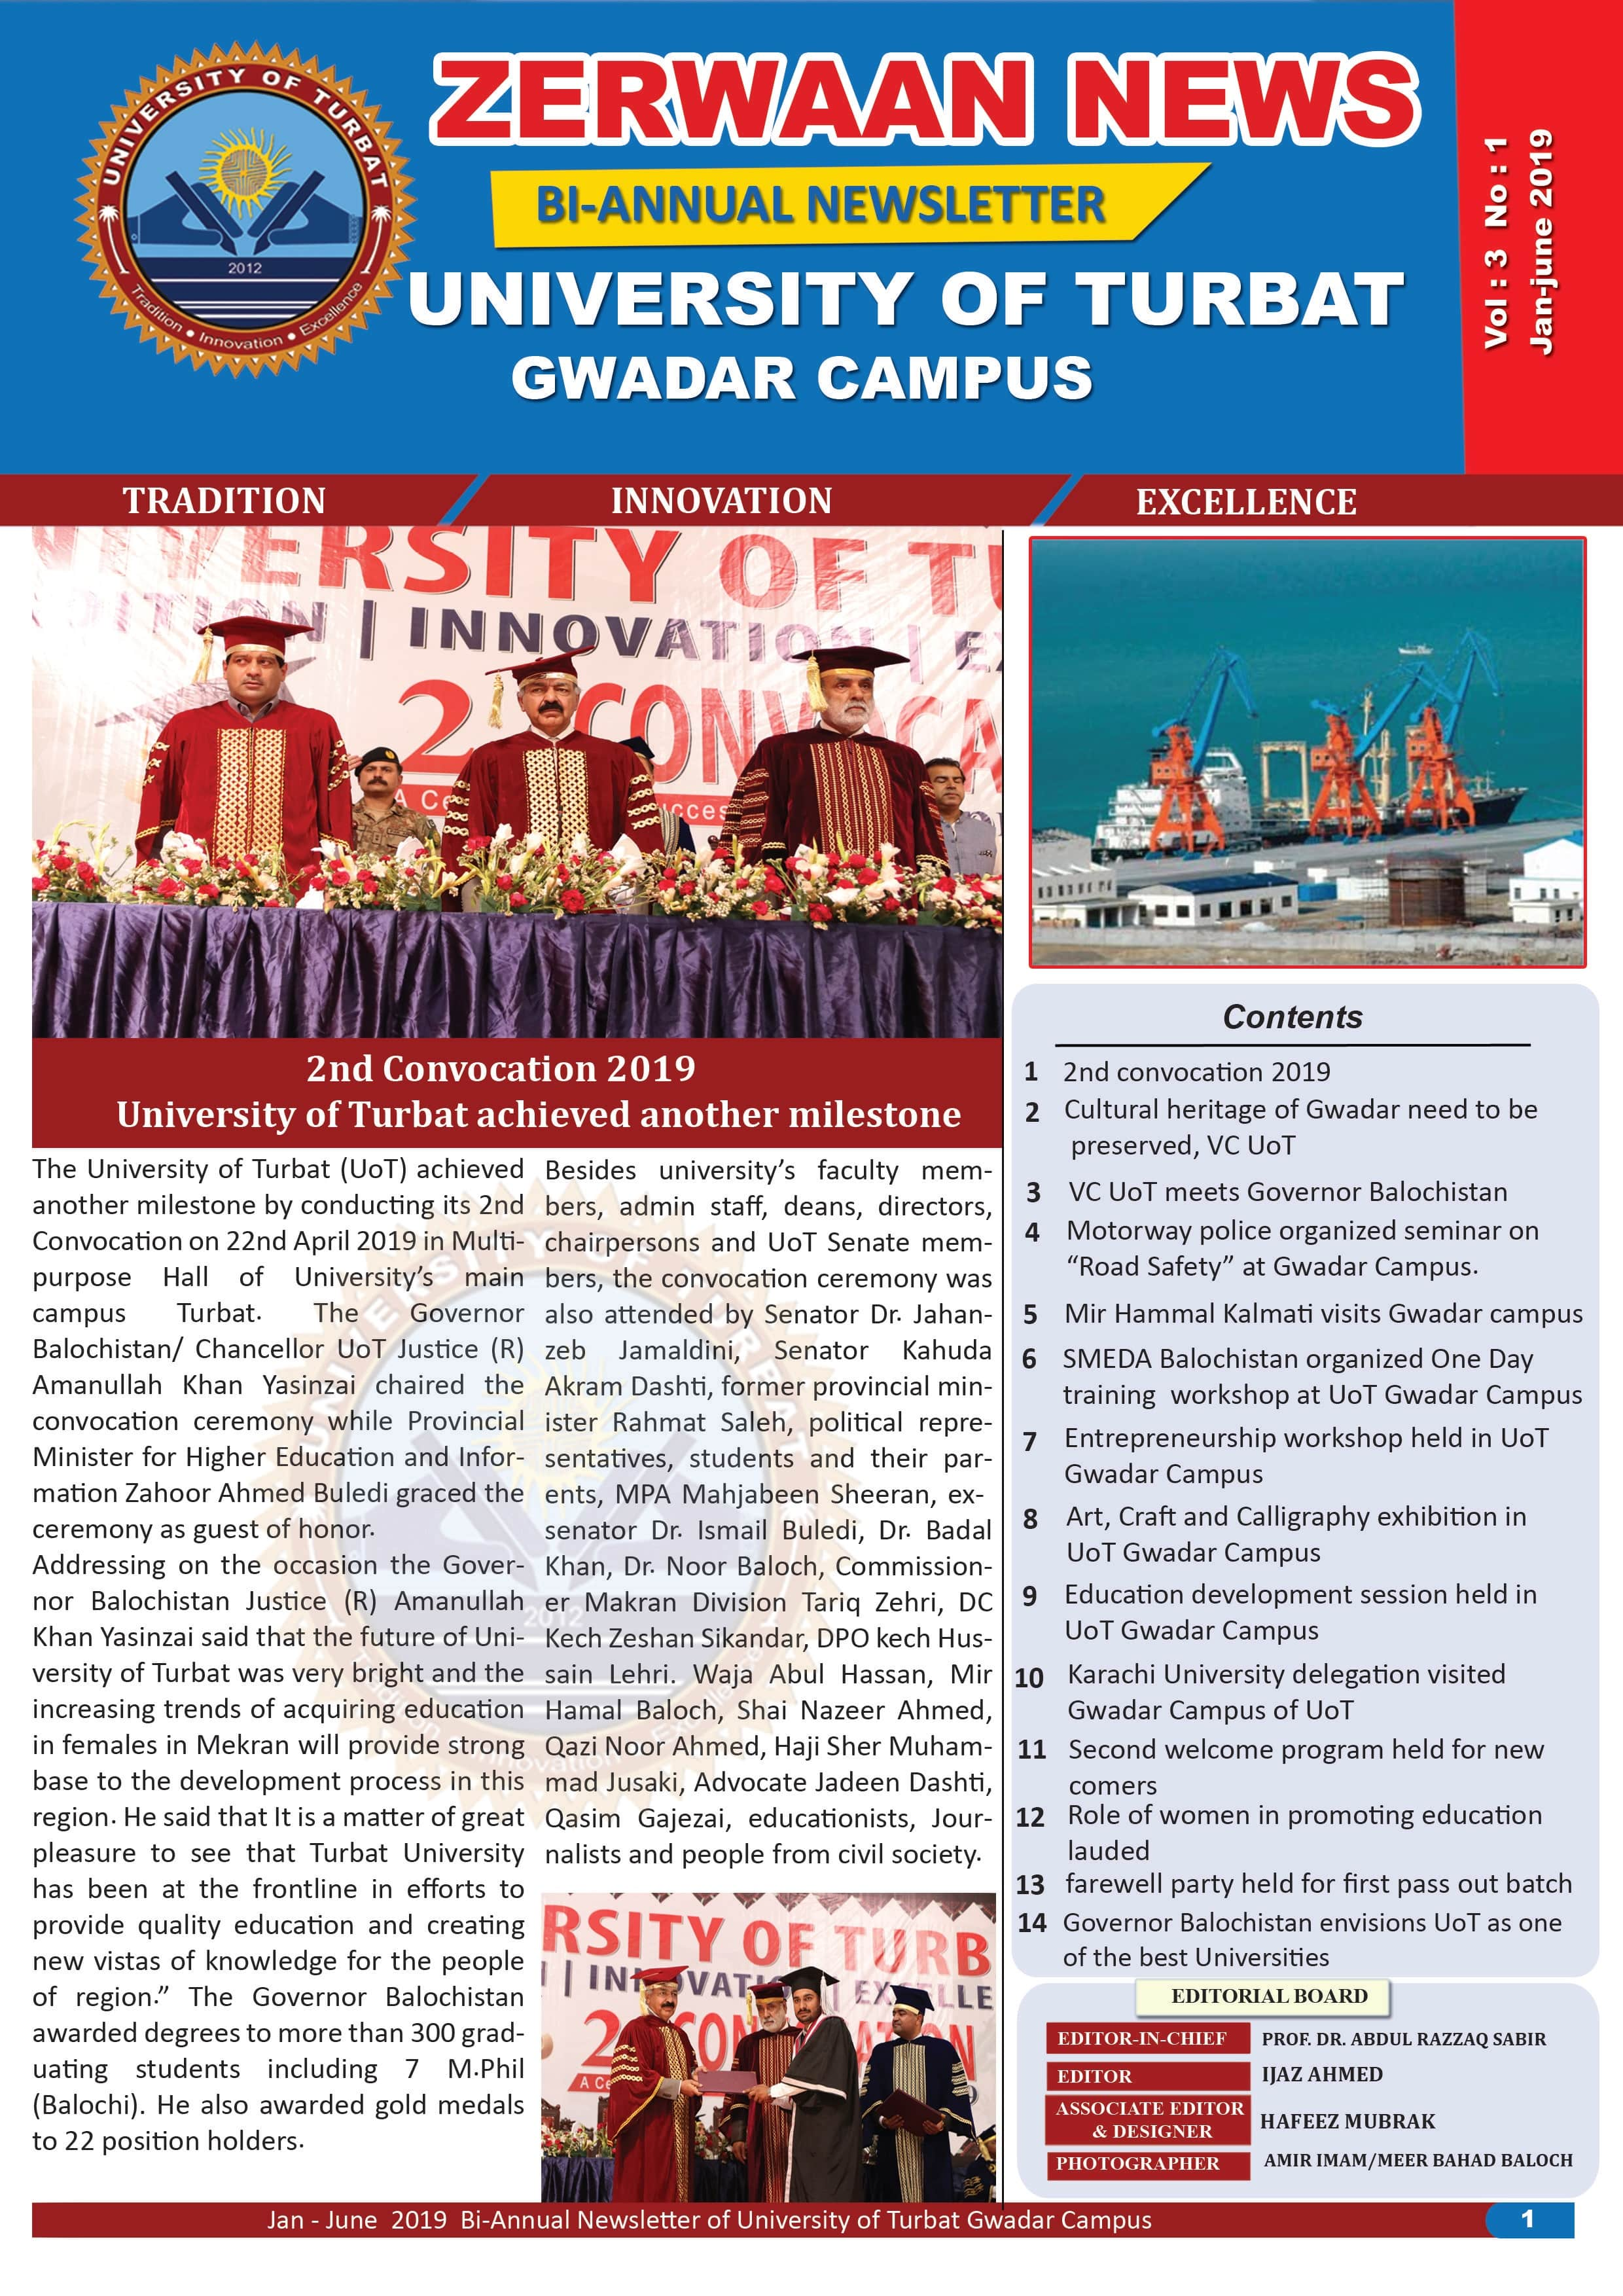 Zerwaan News January-June 2019 Edition